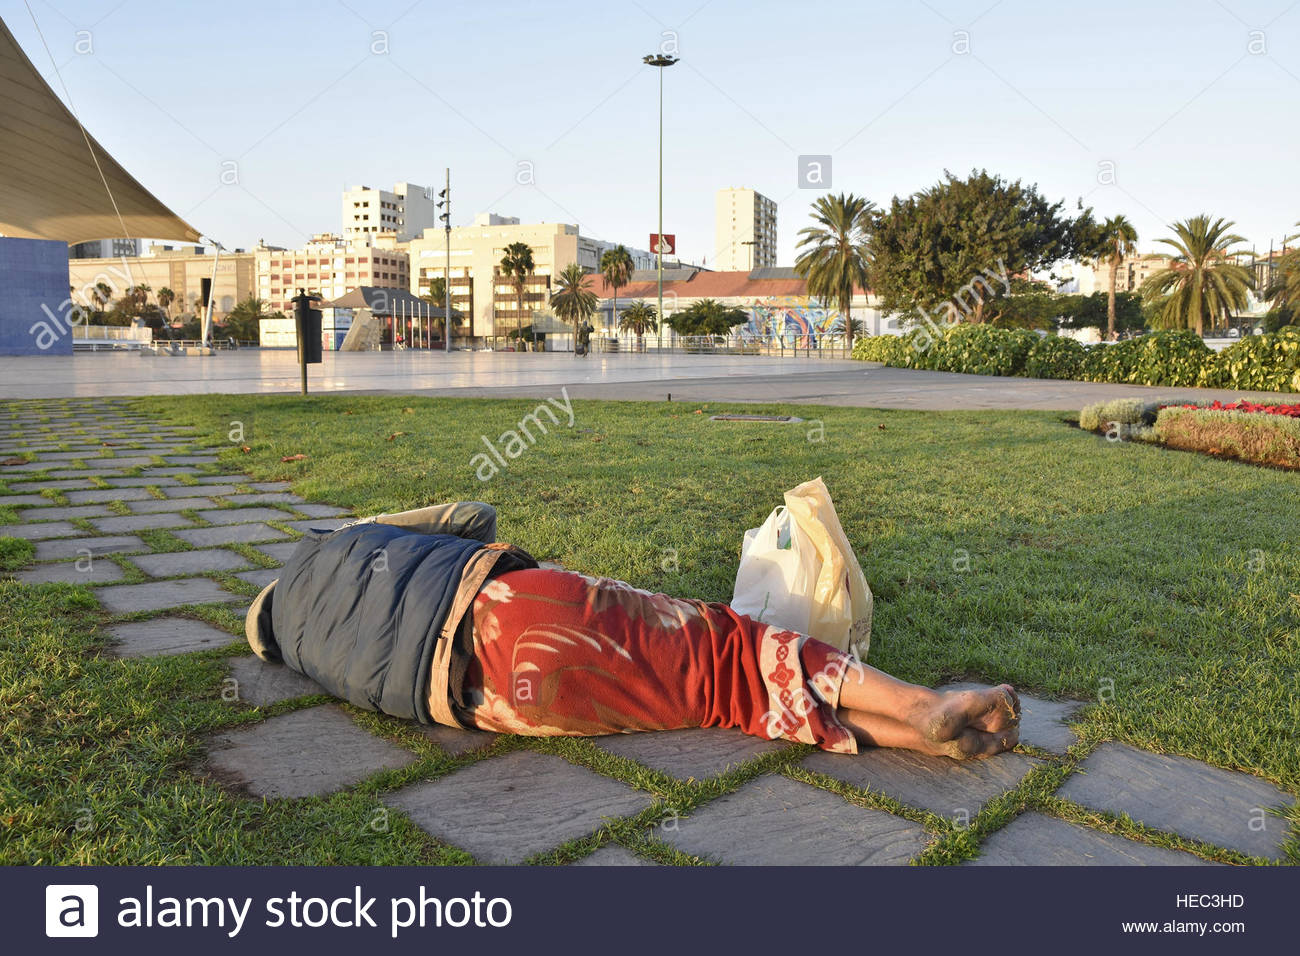 5a87e8860d Homeless man sleeping on the ground in Las Palmas Gran Canaria Canary  Islands Macaronesia (Spain)